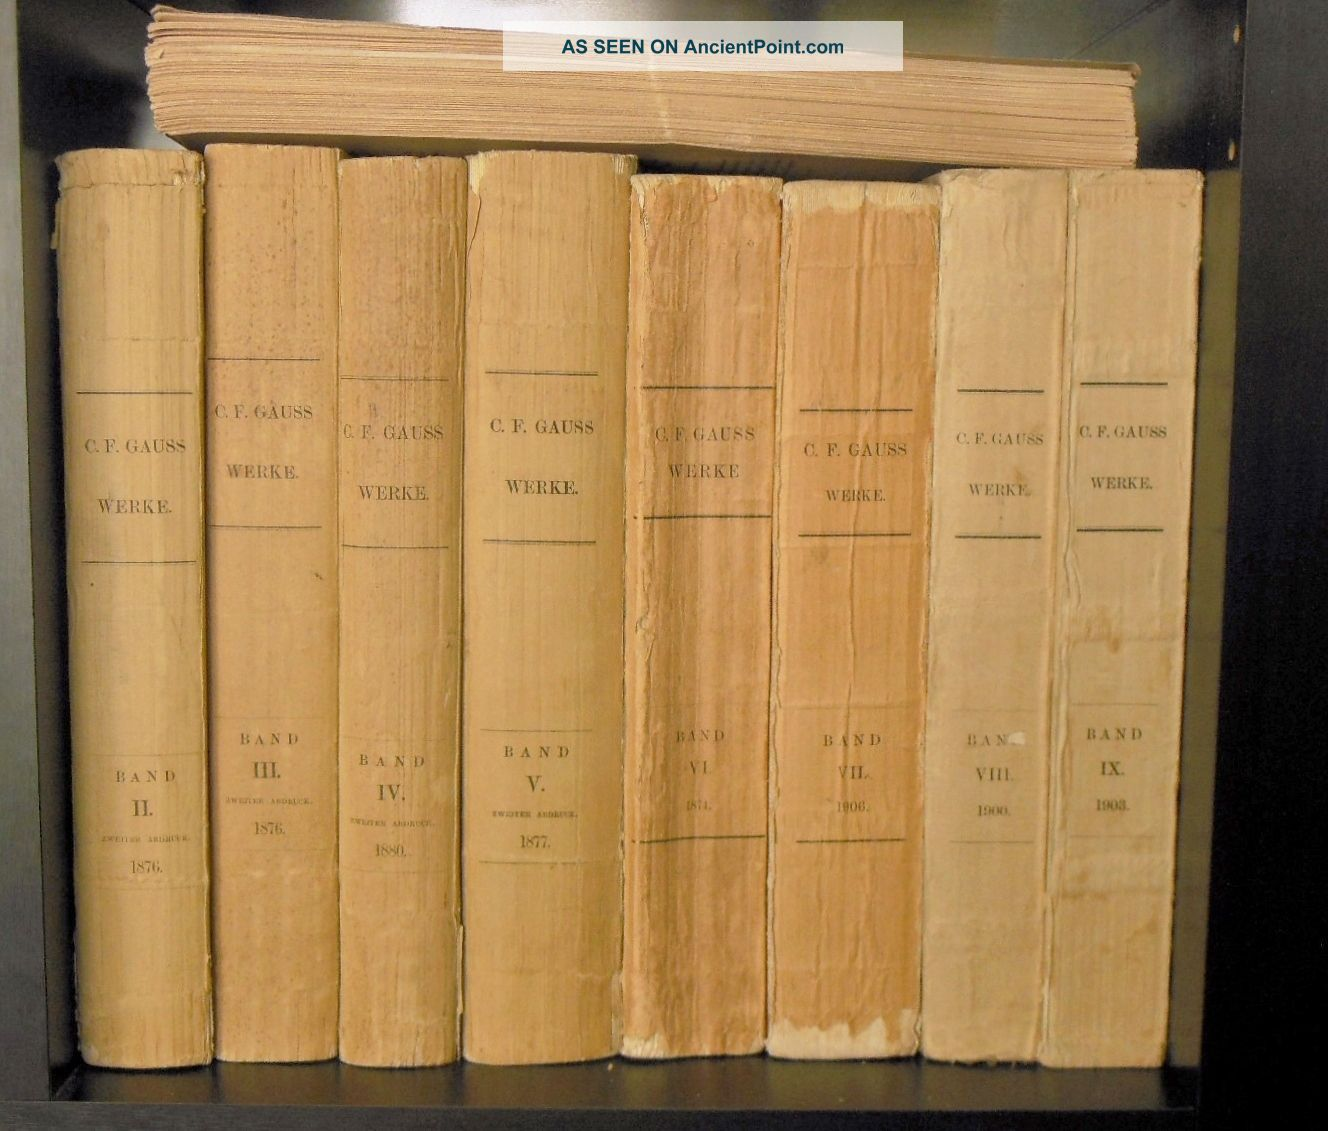 Carl Friedrich Gauss - 9 Volume Set - Werke / Works Gottingen,  Germany 1870 - 1906 European photo